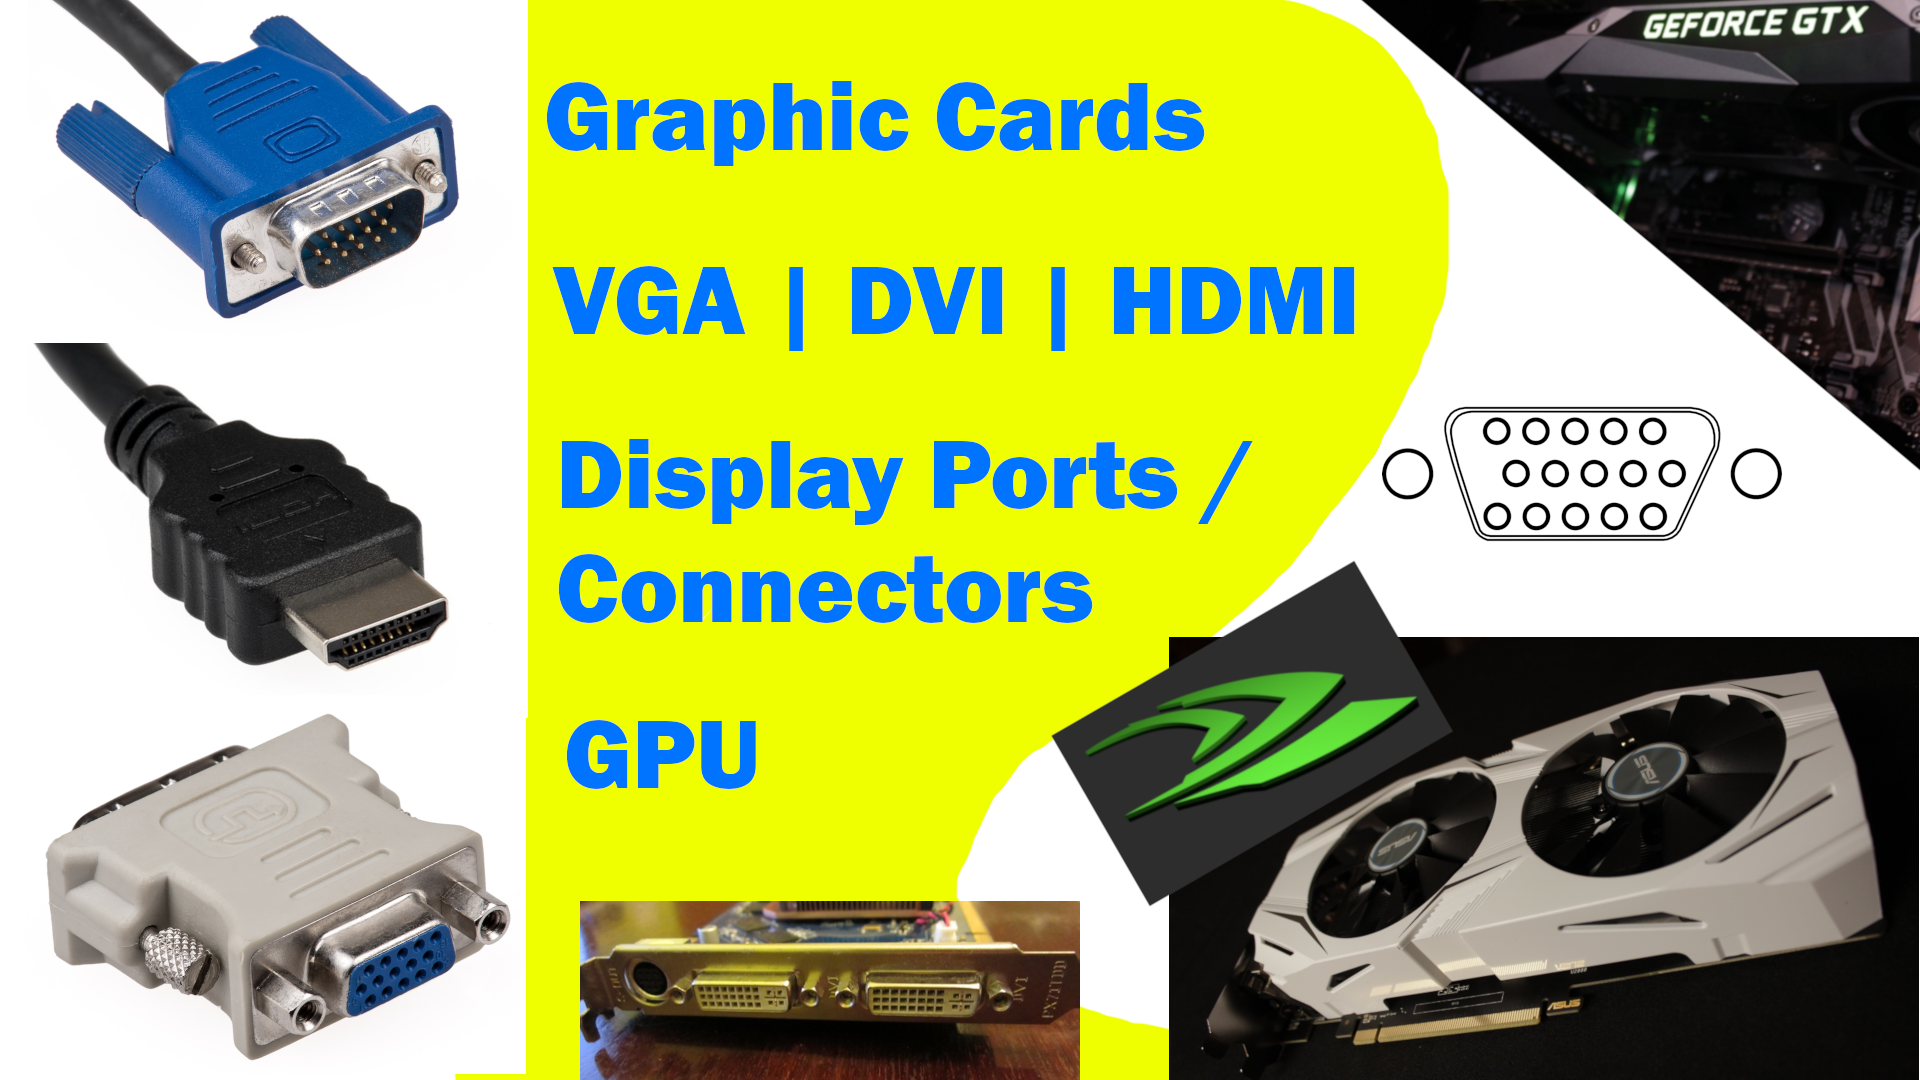 Vga Vs Graphic Cards Hdmi Dvi Display Ports What Is The Difference Between Gpu Vga Cards Graphic Card Dvi Hdmi